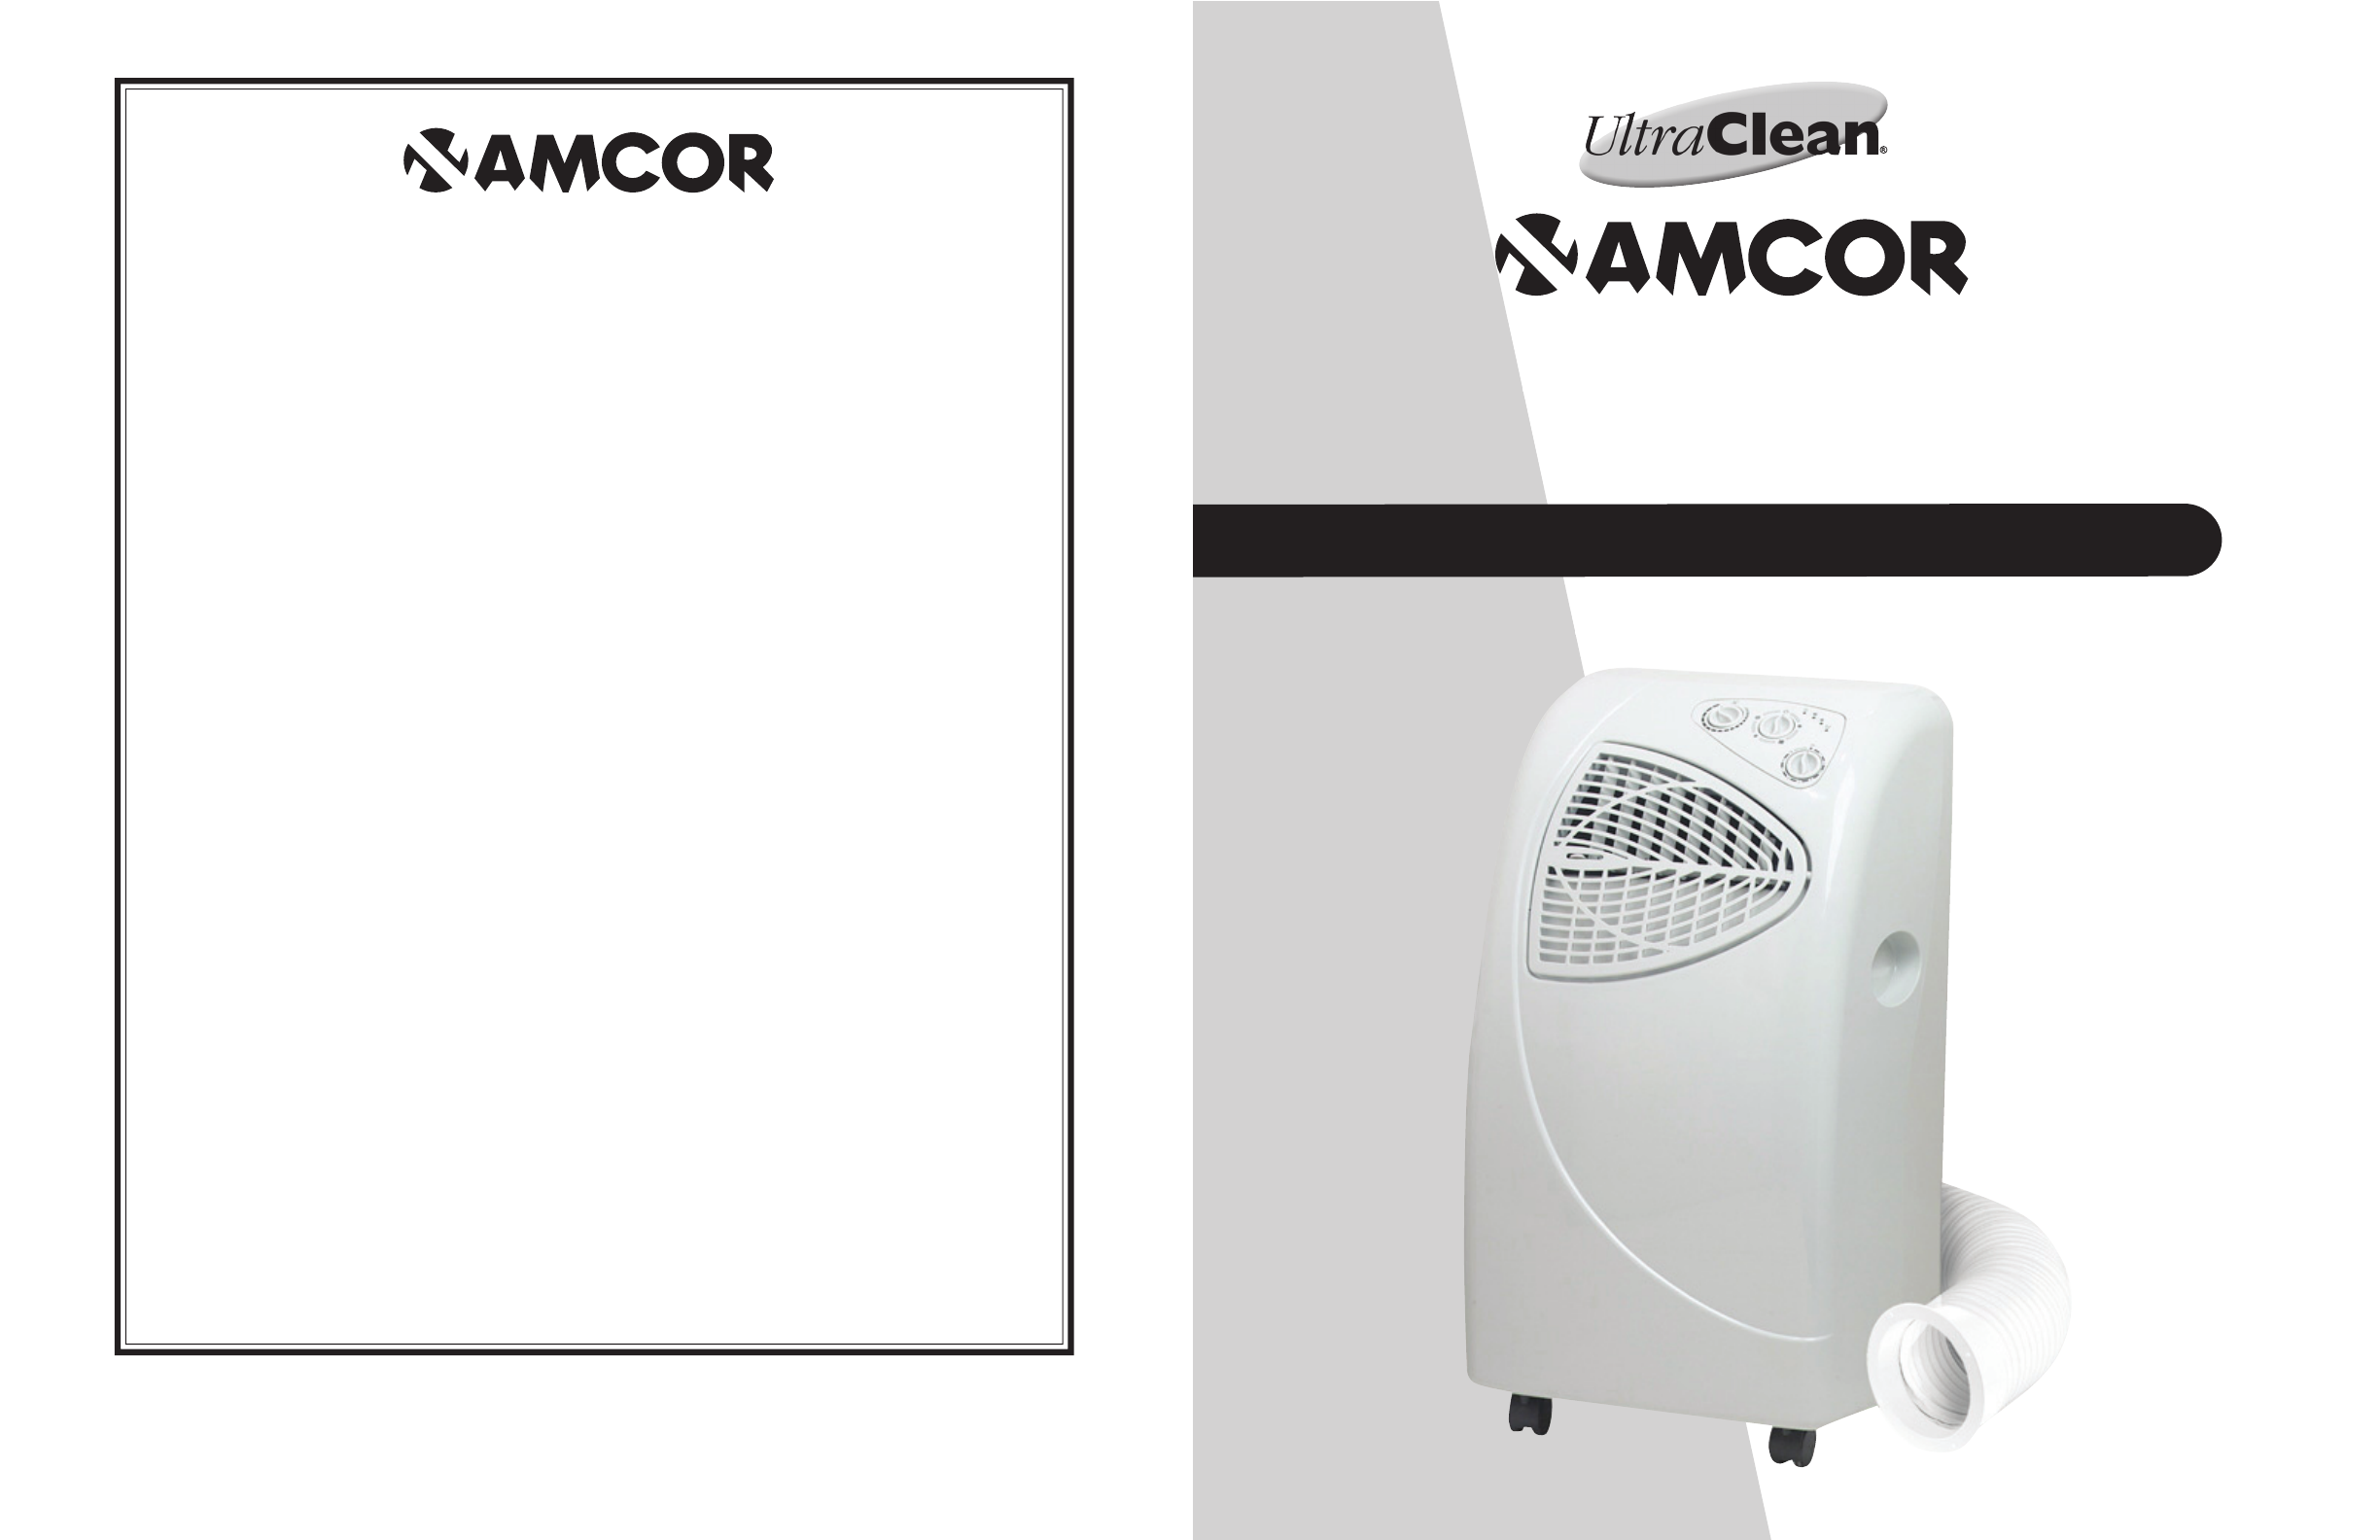 #201C1D Amcor Airline 2000 M Air Conditioner Grihon.com AC  Brand New 11021 Amcor Portable Air Conditioner Replacement Parts images with 2448x1584 px on helpvideos.info - Air Conditioners, Air Coolers and more